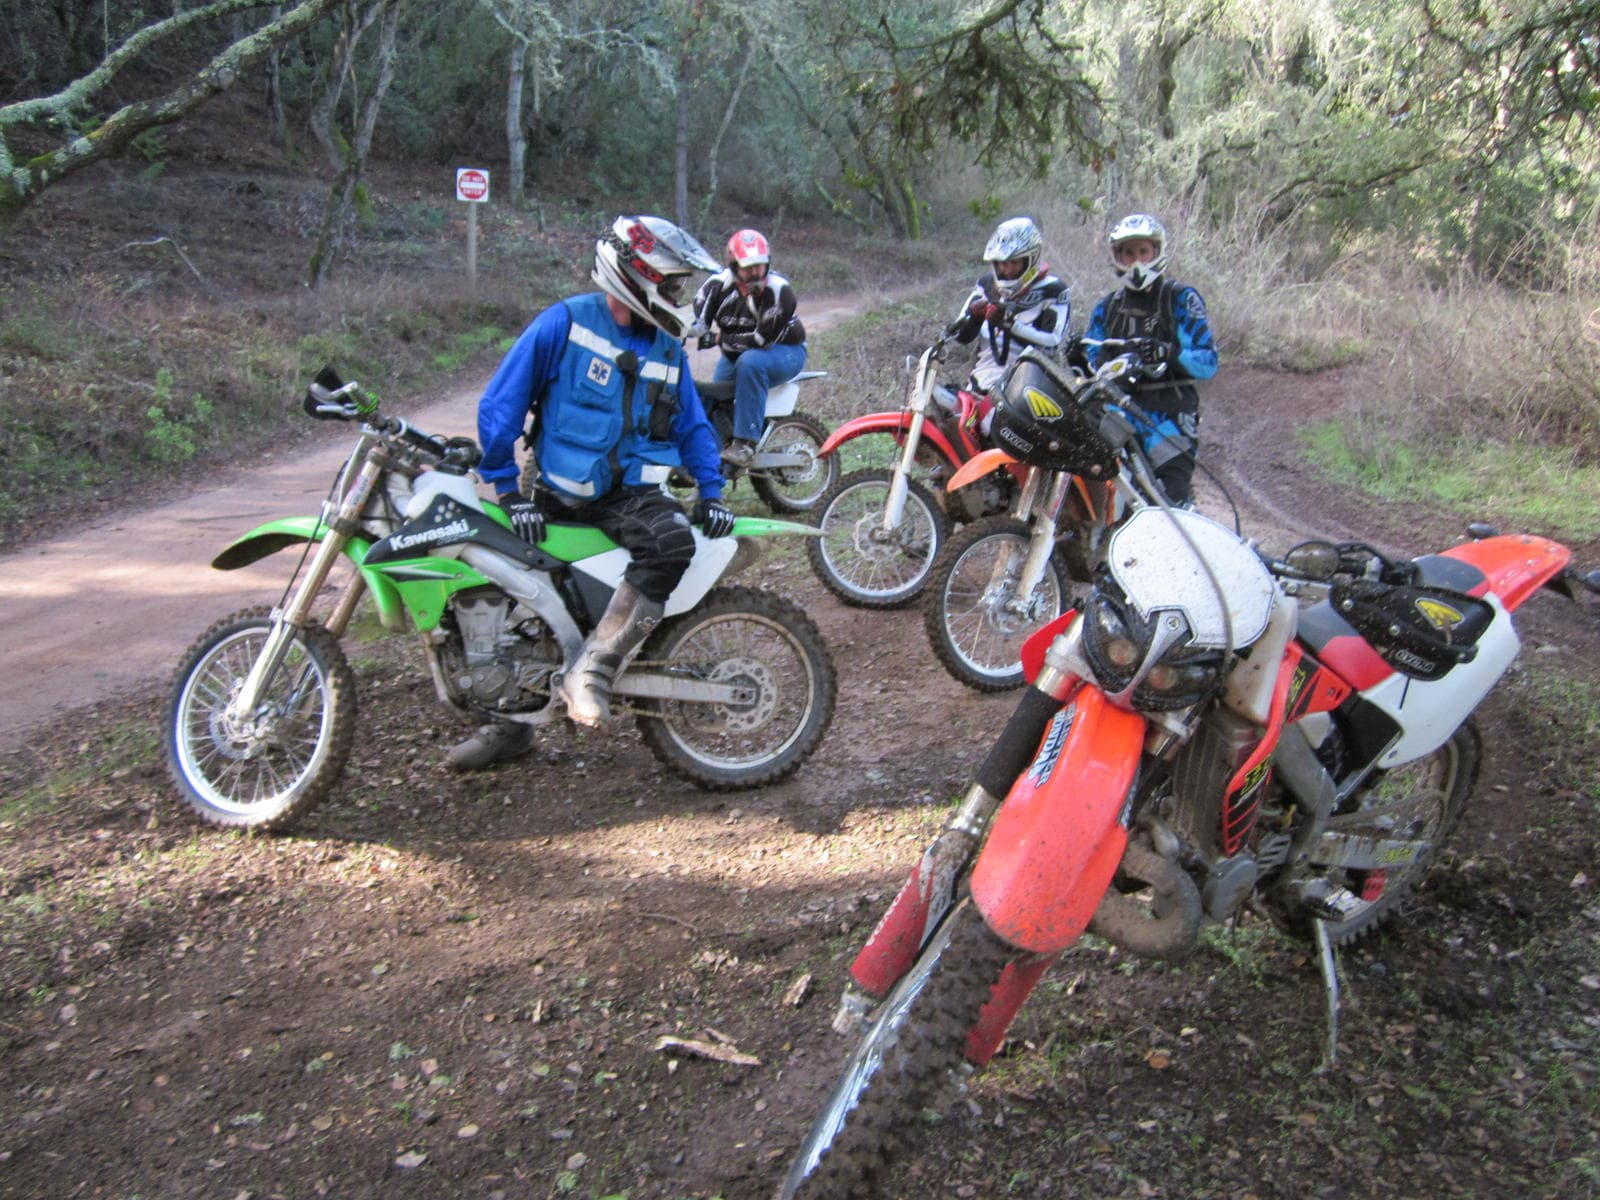 Group of dirt bike riders at Hollister Hills State Vehicular Recreation Area